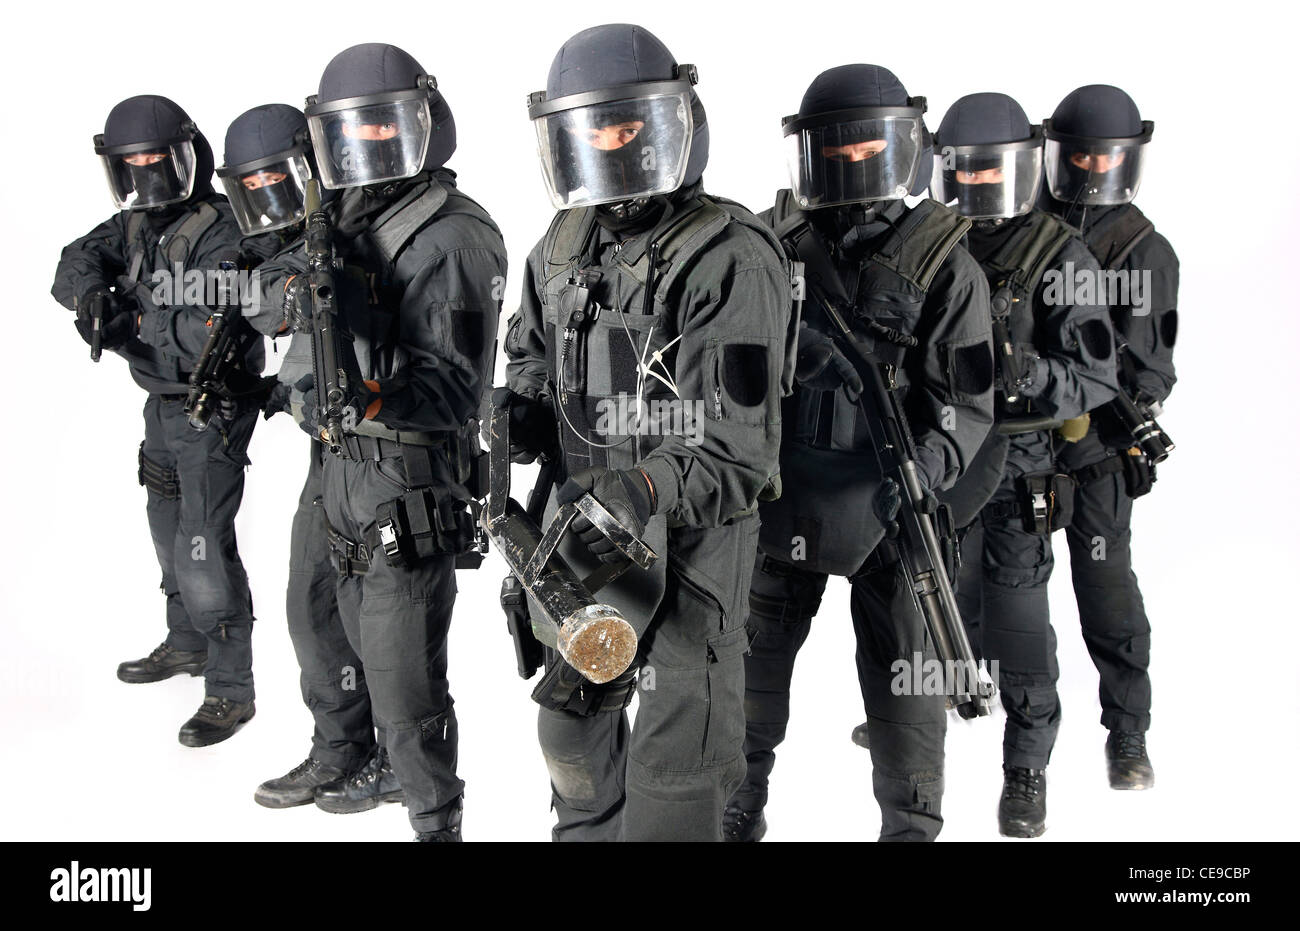 swat team stock photos & swat team stock images - alamy, Human body